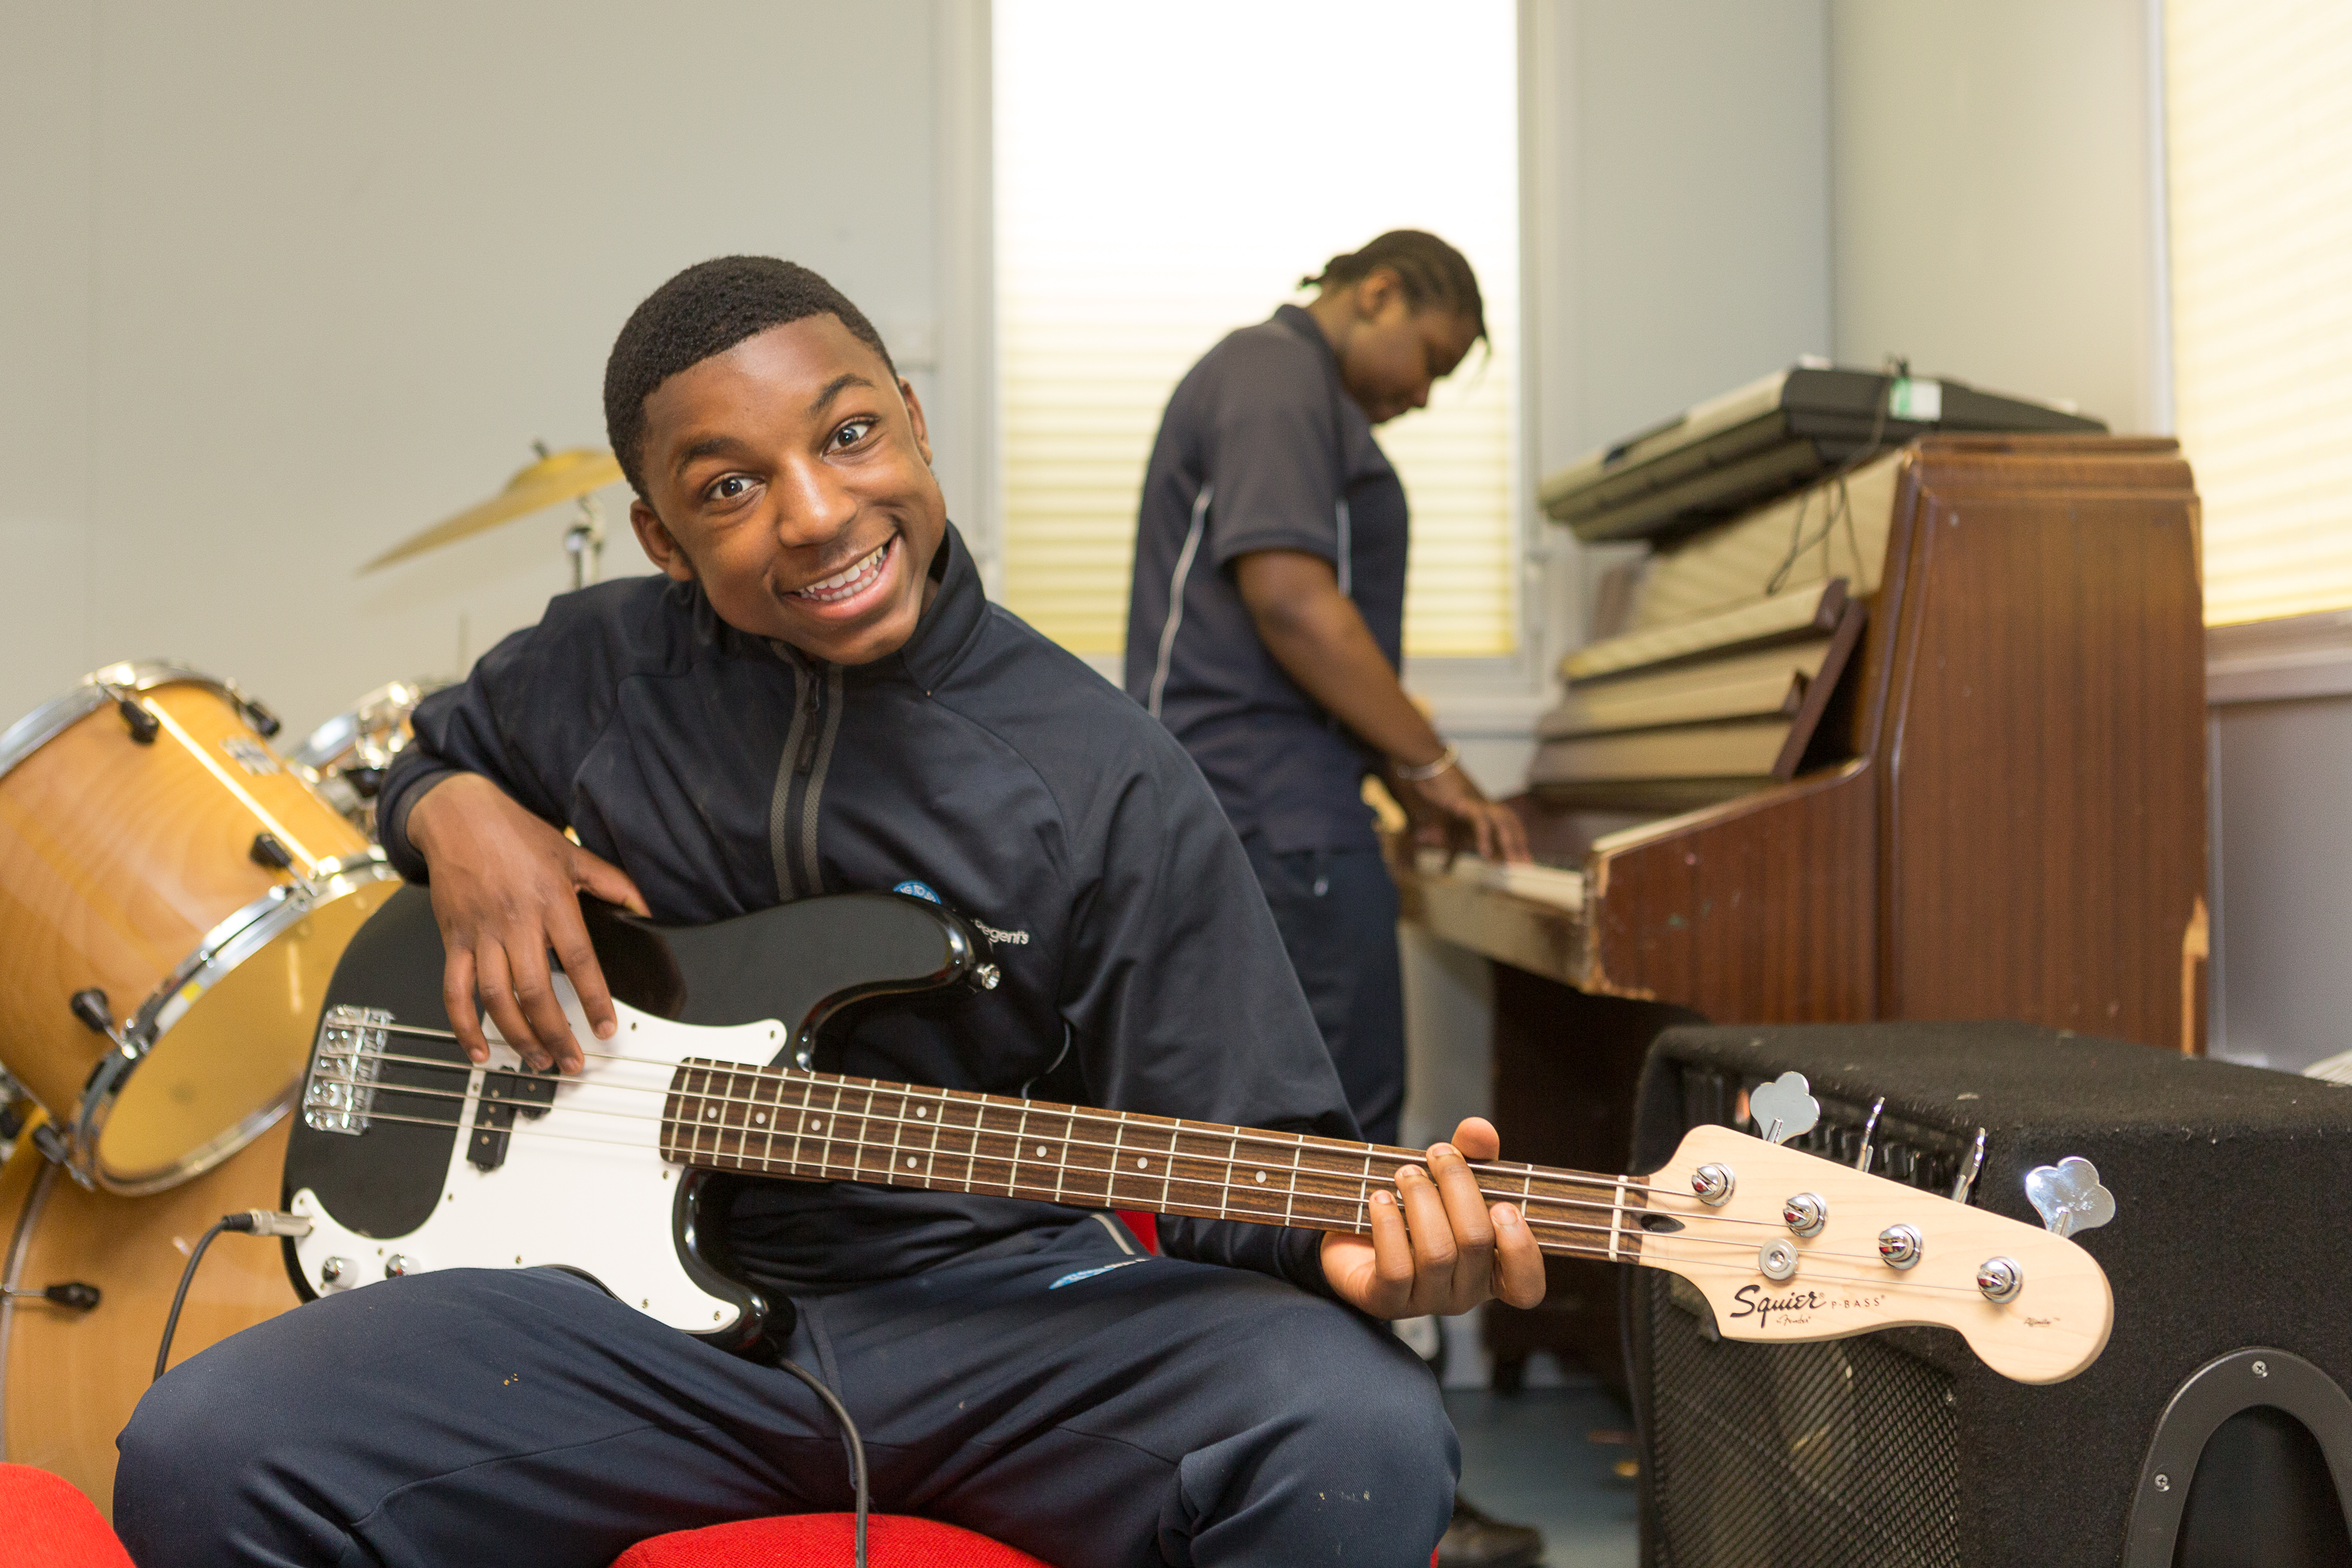 A young man smiles while playing bass guitar, as another plays piano in the background